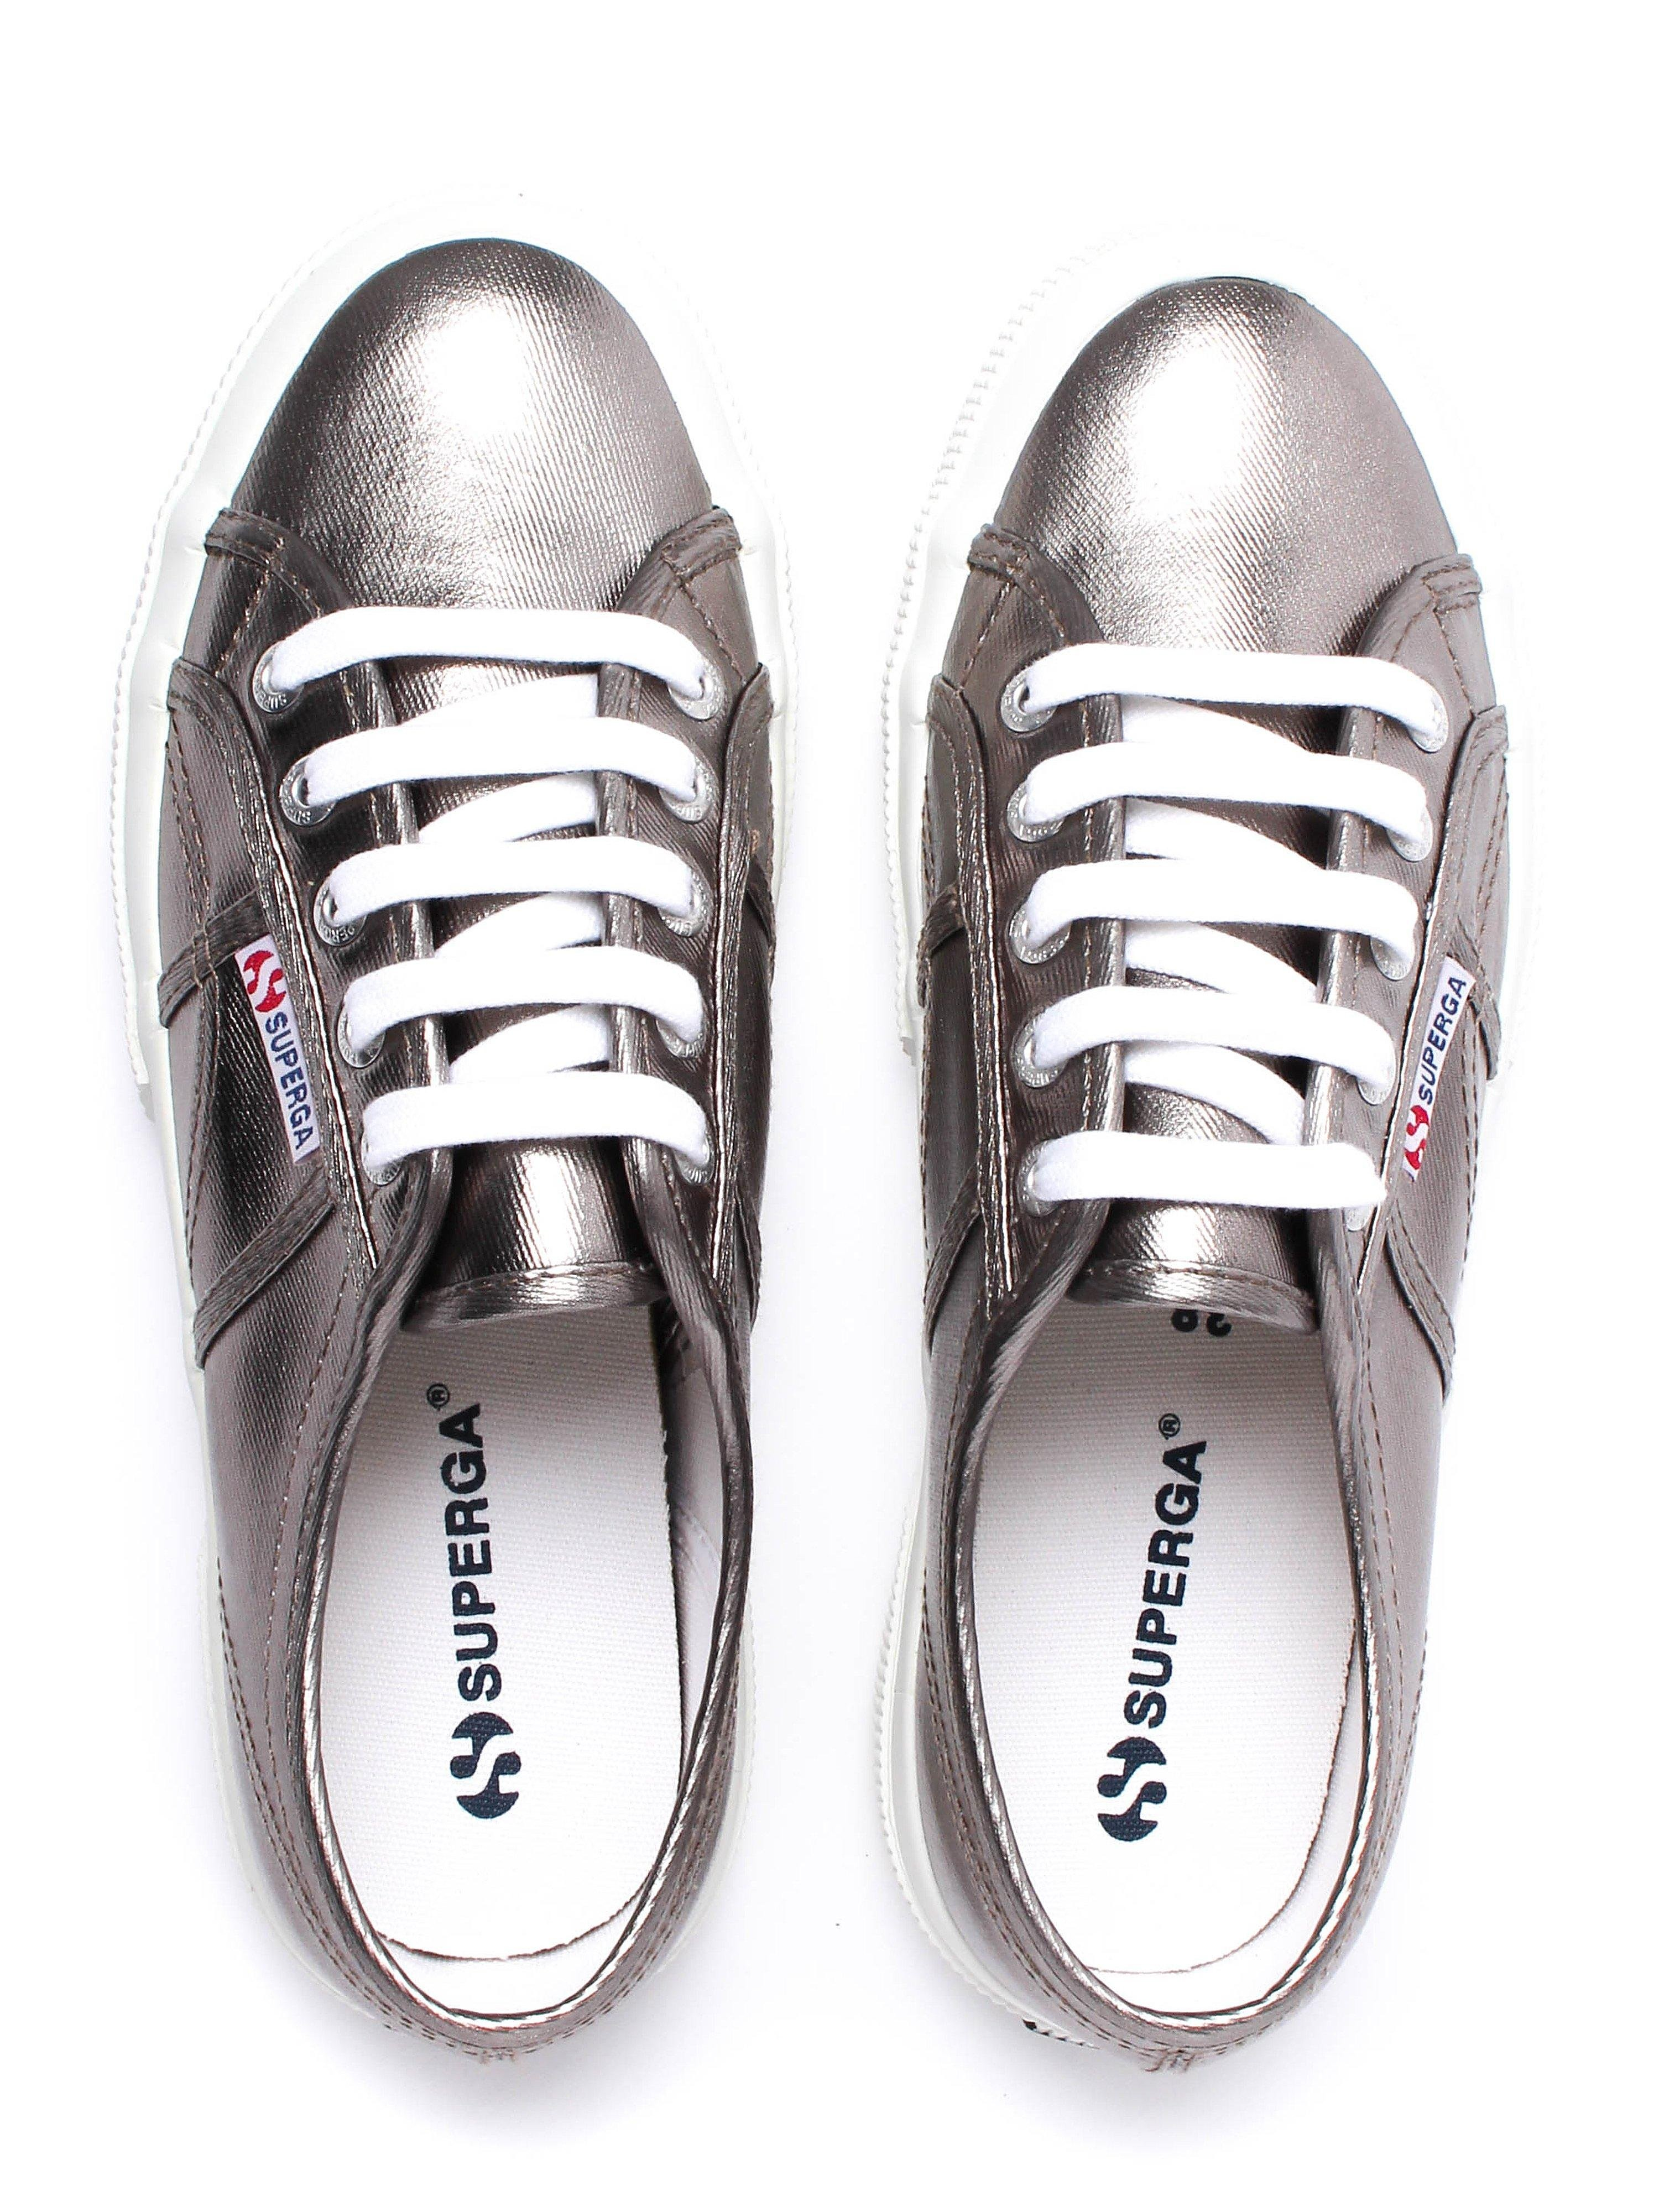 Superga Women's 2750 Metu Metallic Canvas Trainers - Pewter